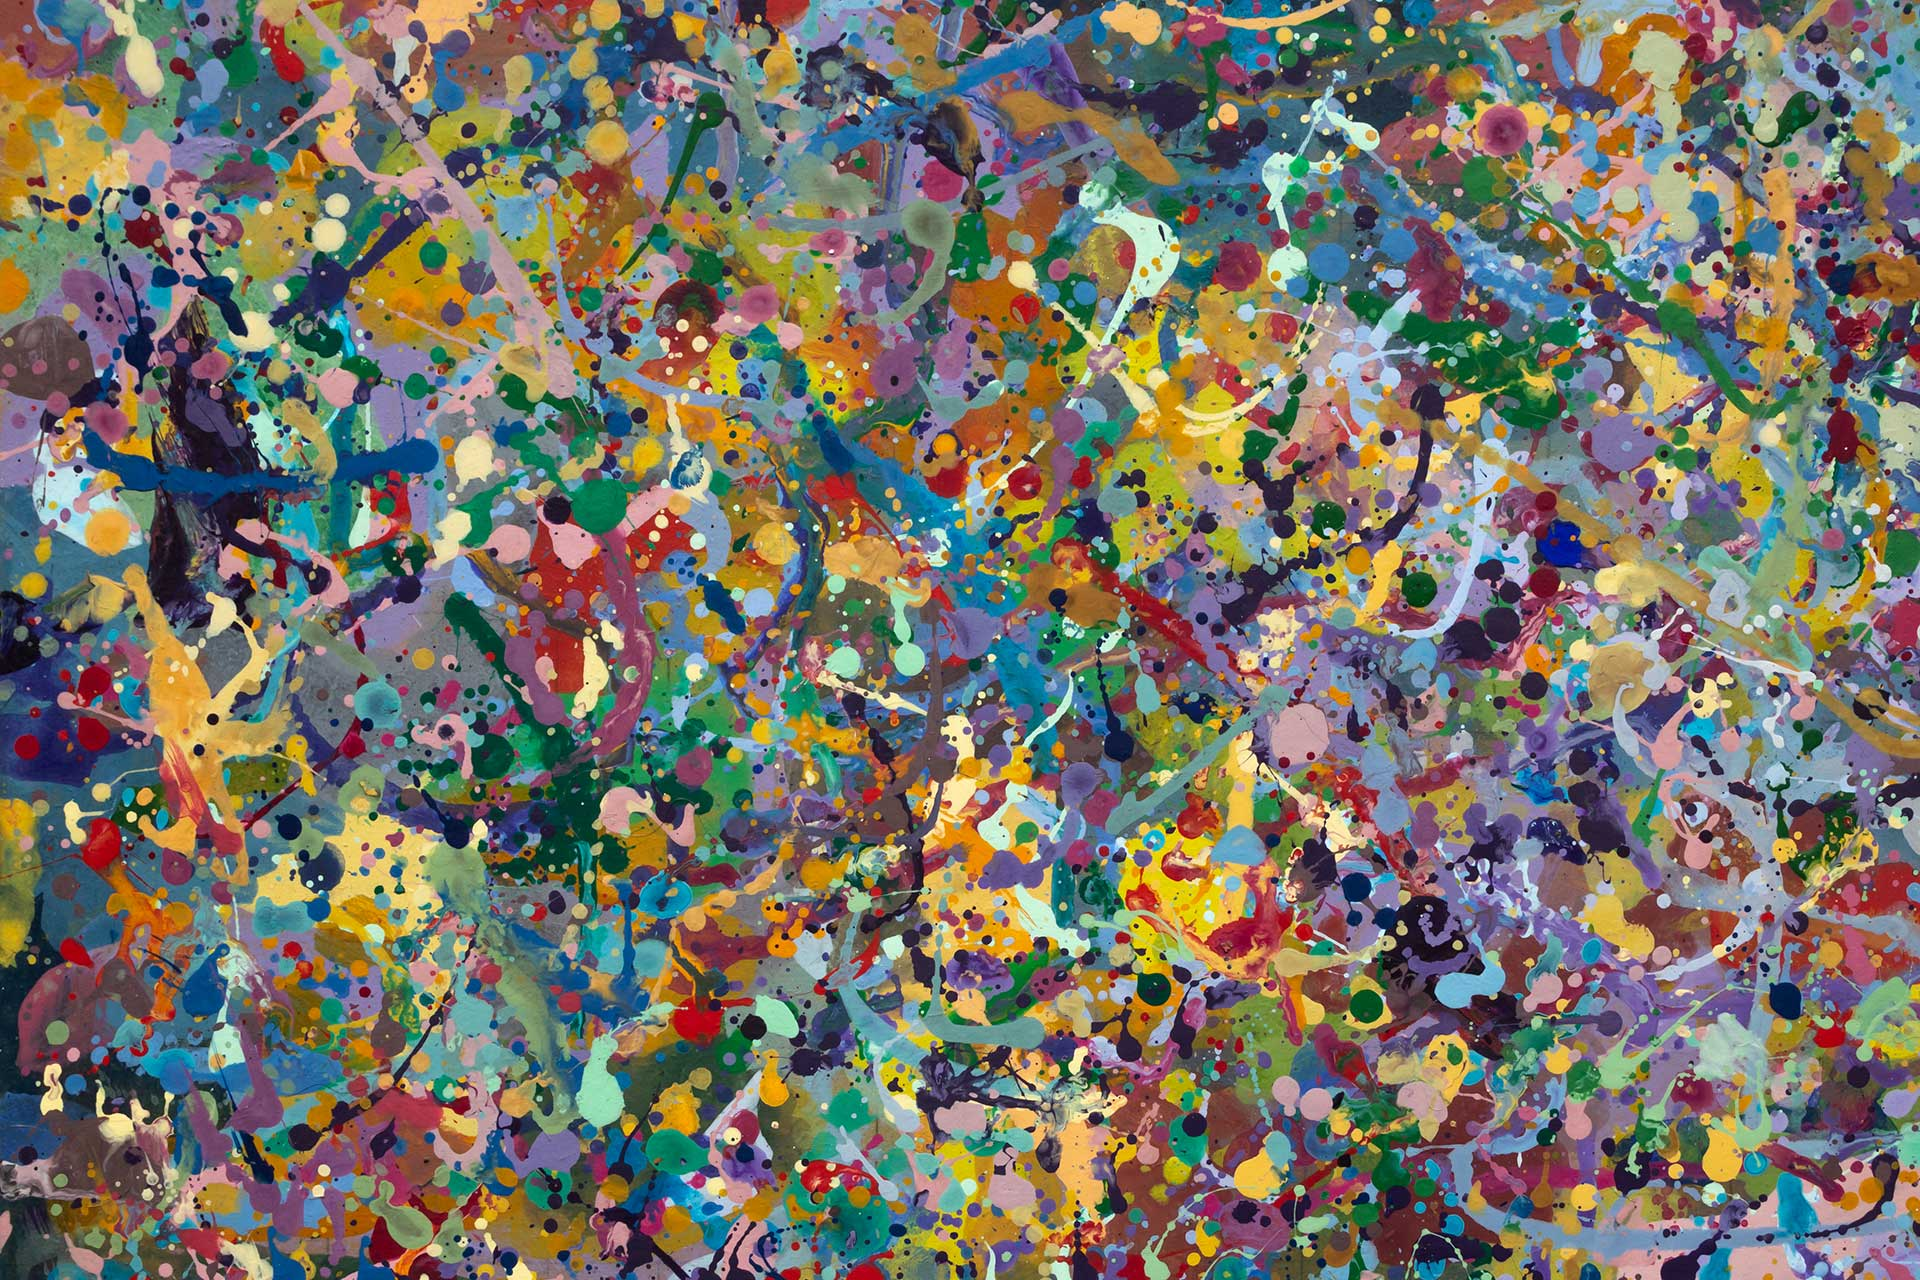 Abstract expressionism painting - Butterfly orgy - Detail 6